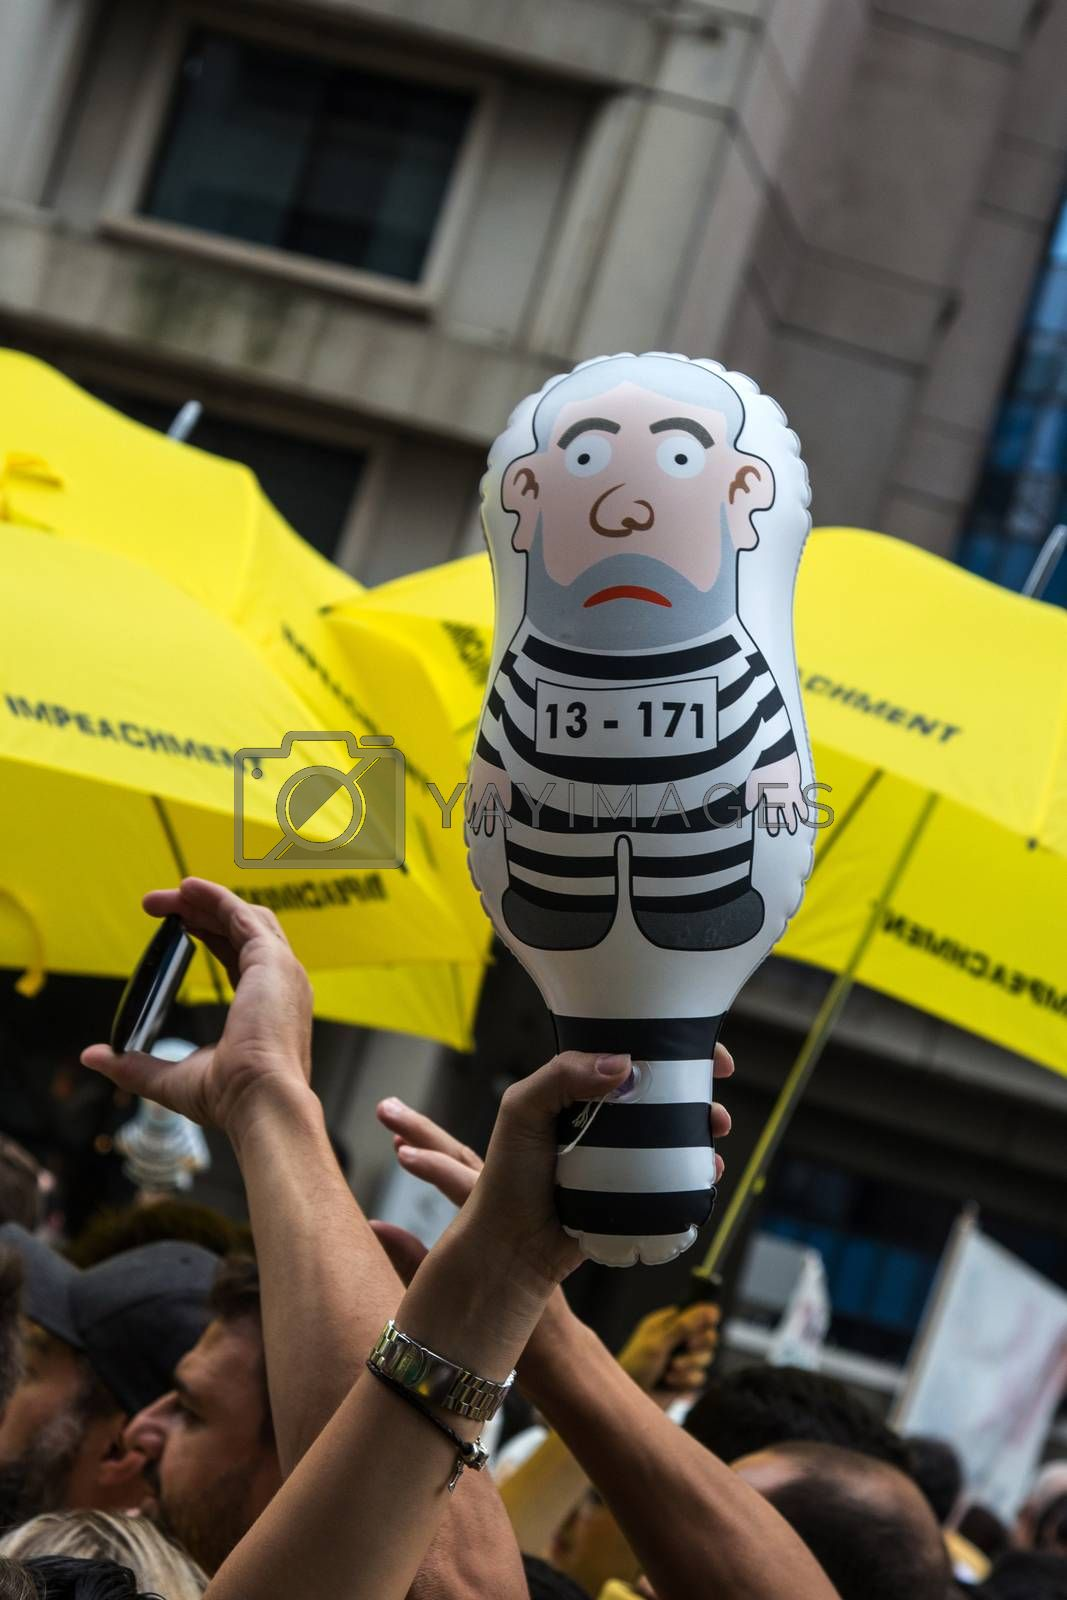 Sao Paulo Brazil March 13, 2016: One unidentified group of people in the biggest protest against federal government corruption in Sao Paulo with an inflated doll called pixuleco.